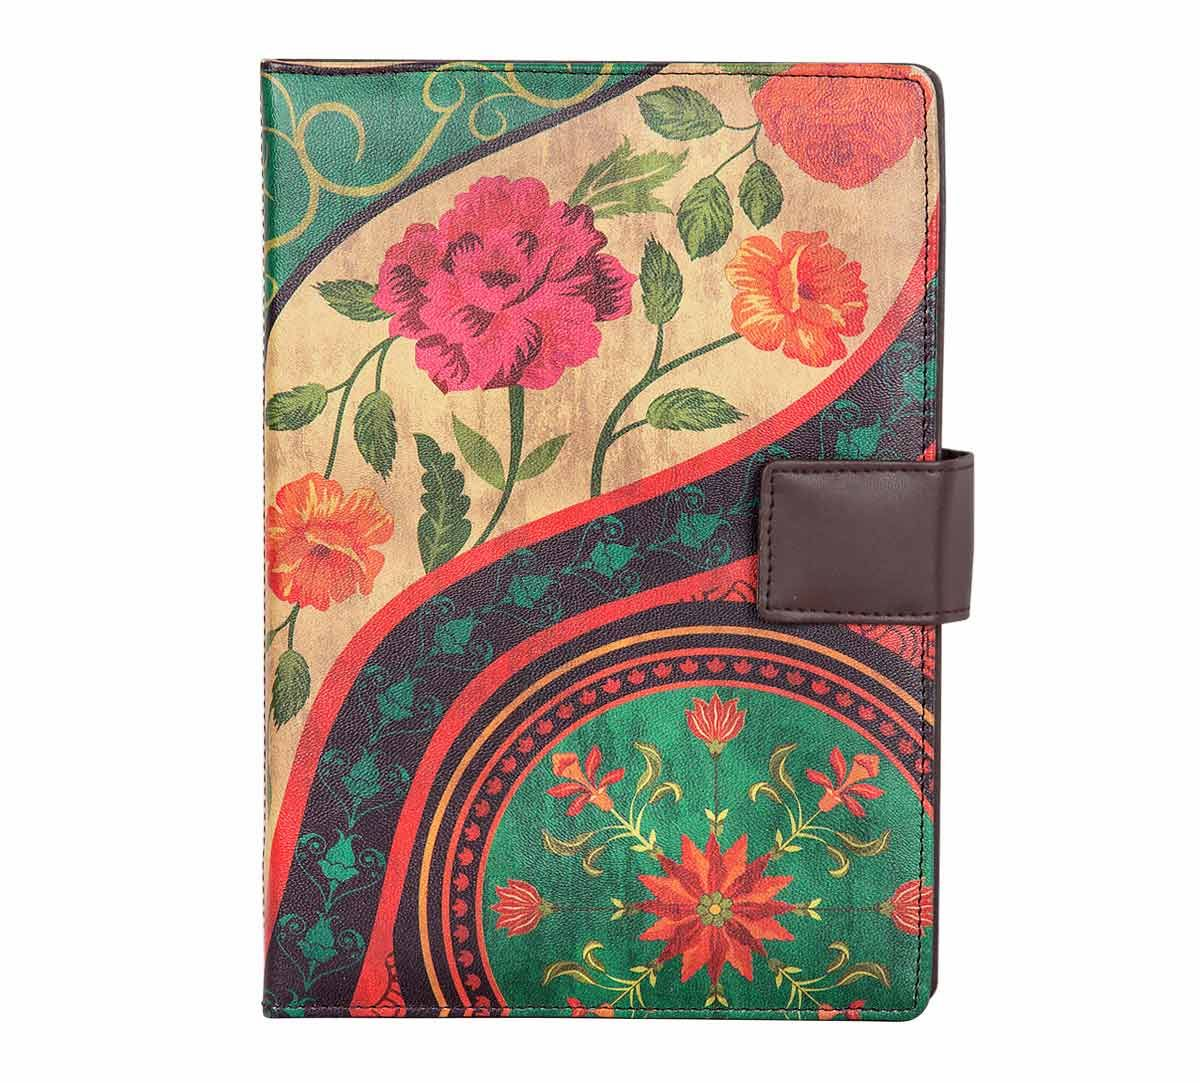 India Circus Floral Embroidery Notebook Planner